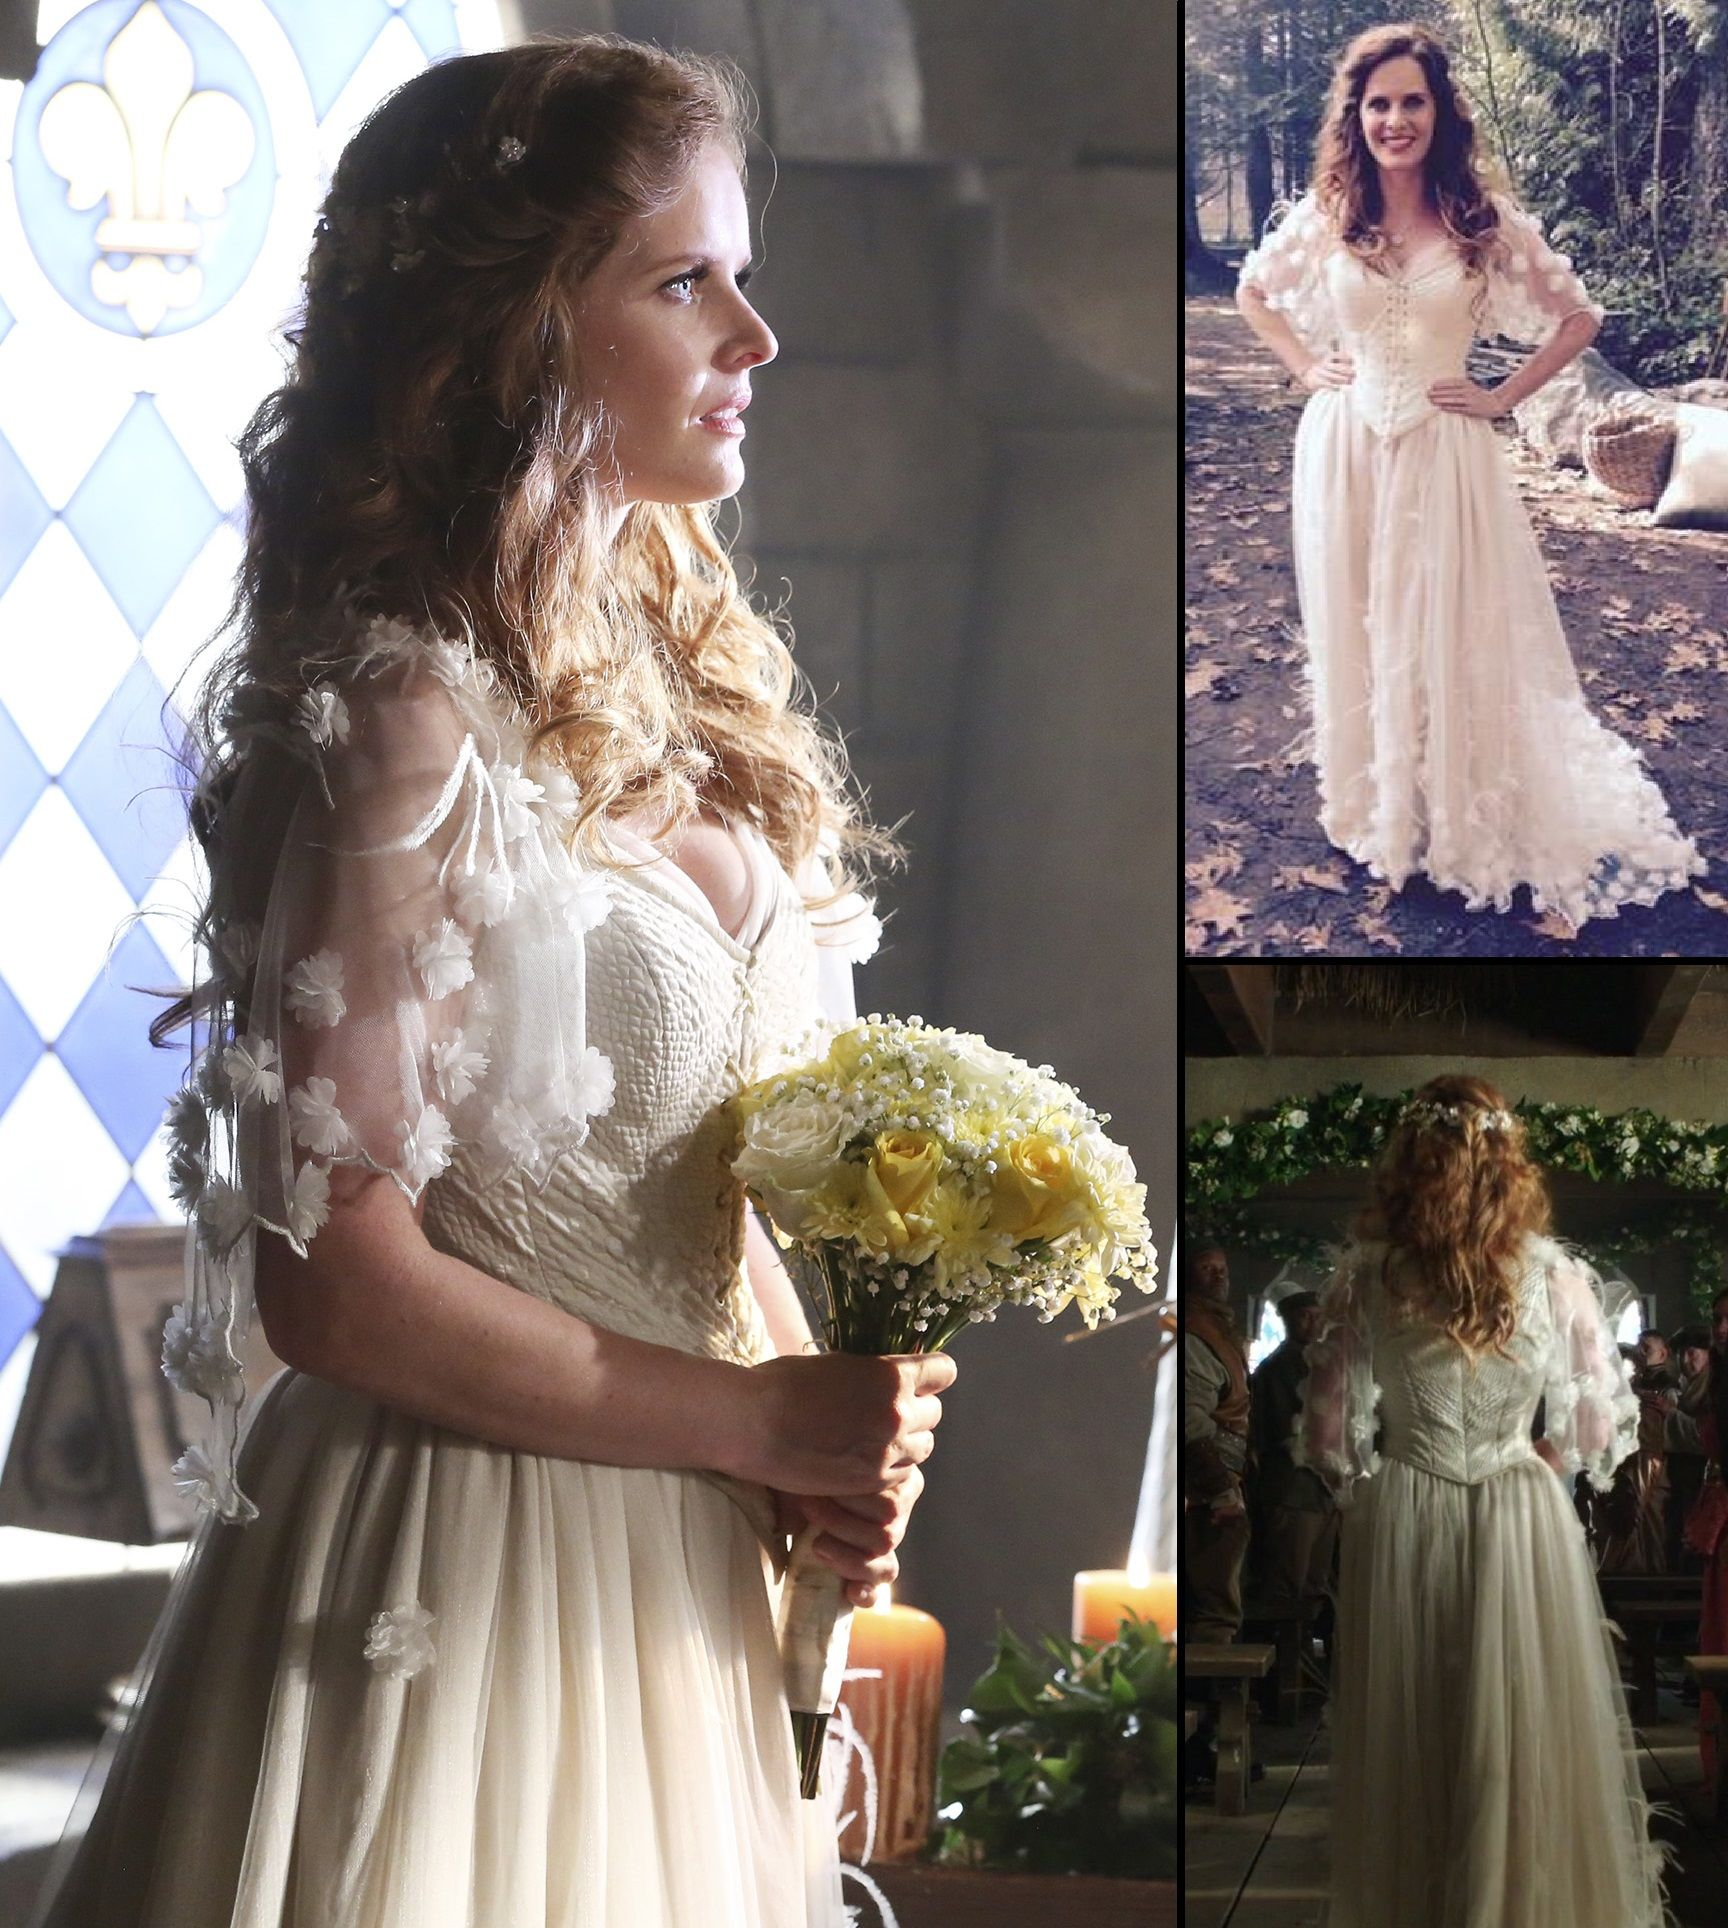 Zelena (wedding dress) | Once Upon a Time - A sprinkle of fairy dust ...